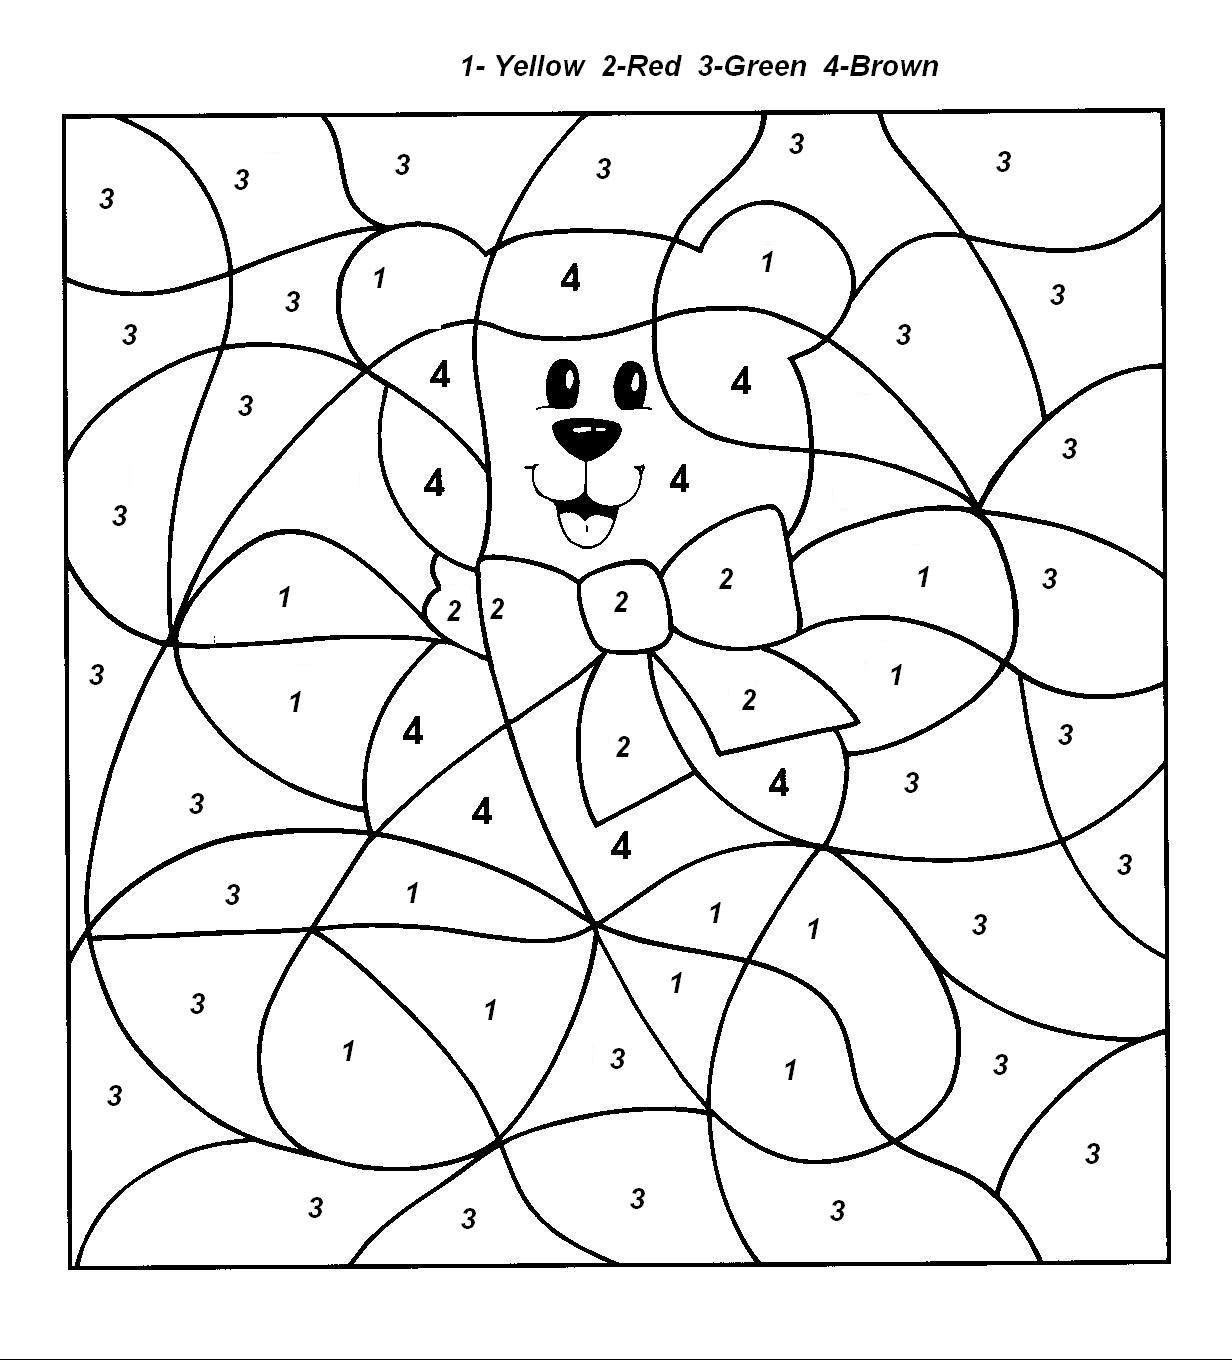 coloring with numbers printable christmas color by numbers best coloring pages for kids with coloring numbers printable